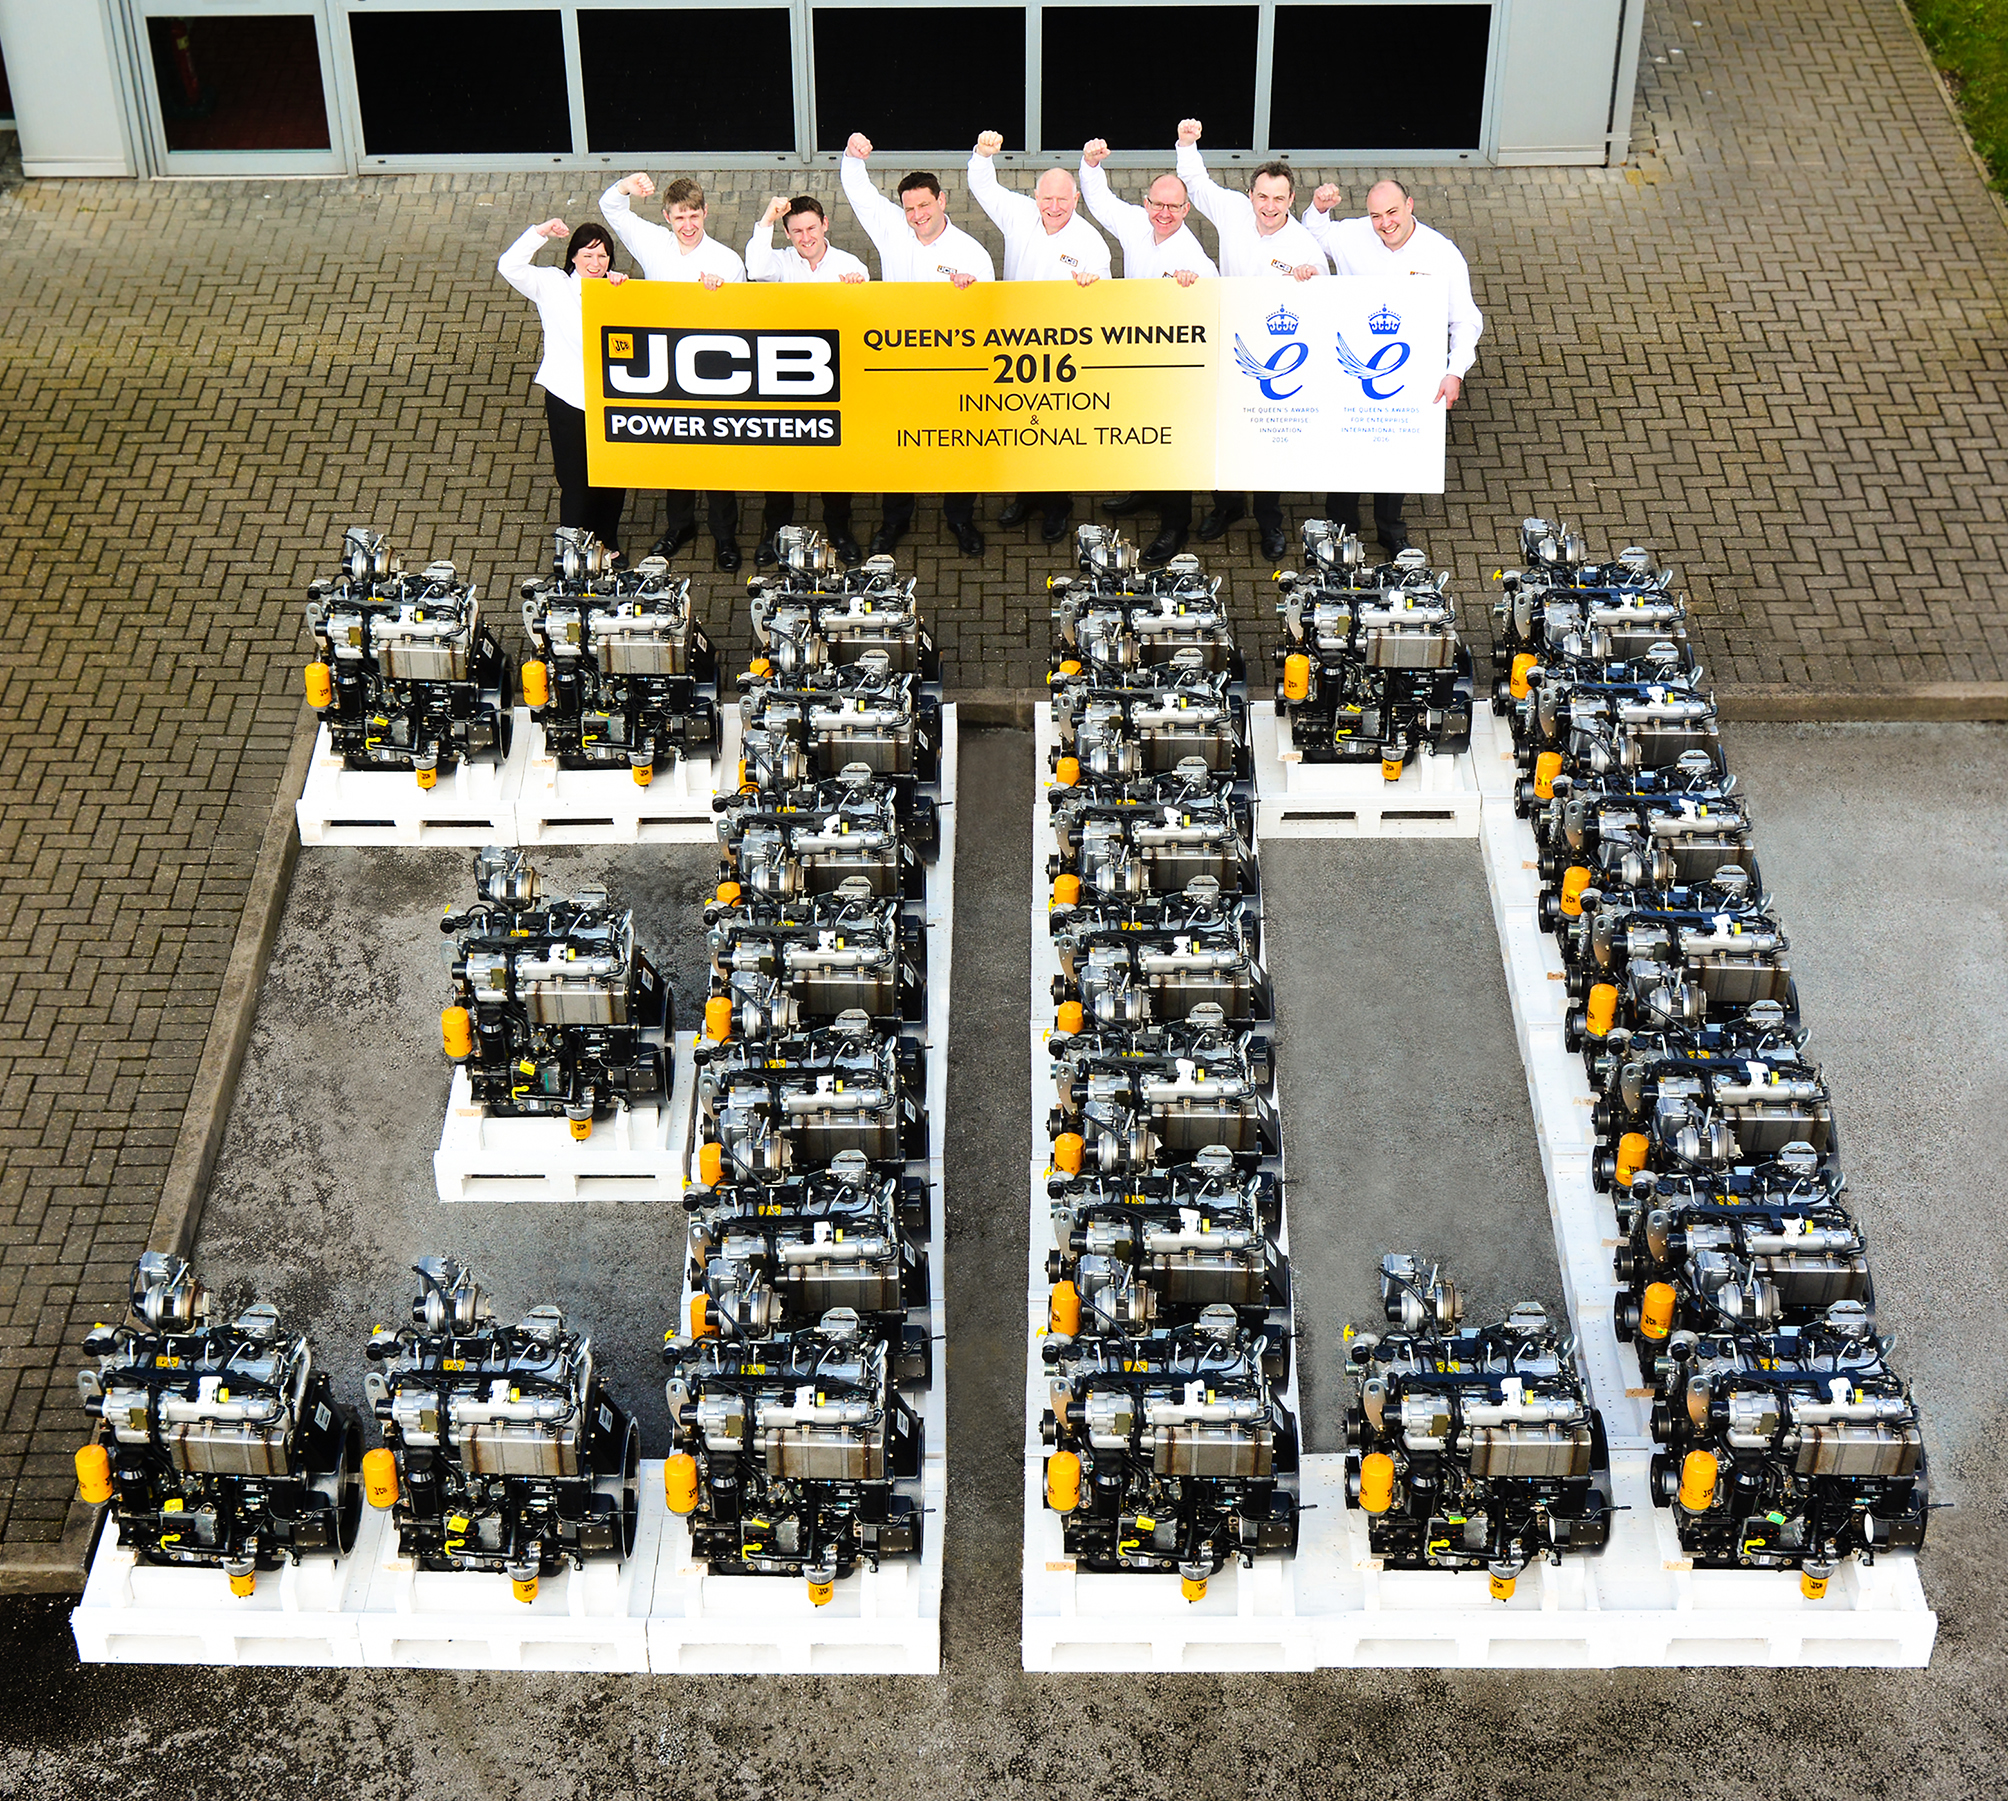 JCB Power Systems - Queen's Award